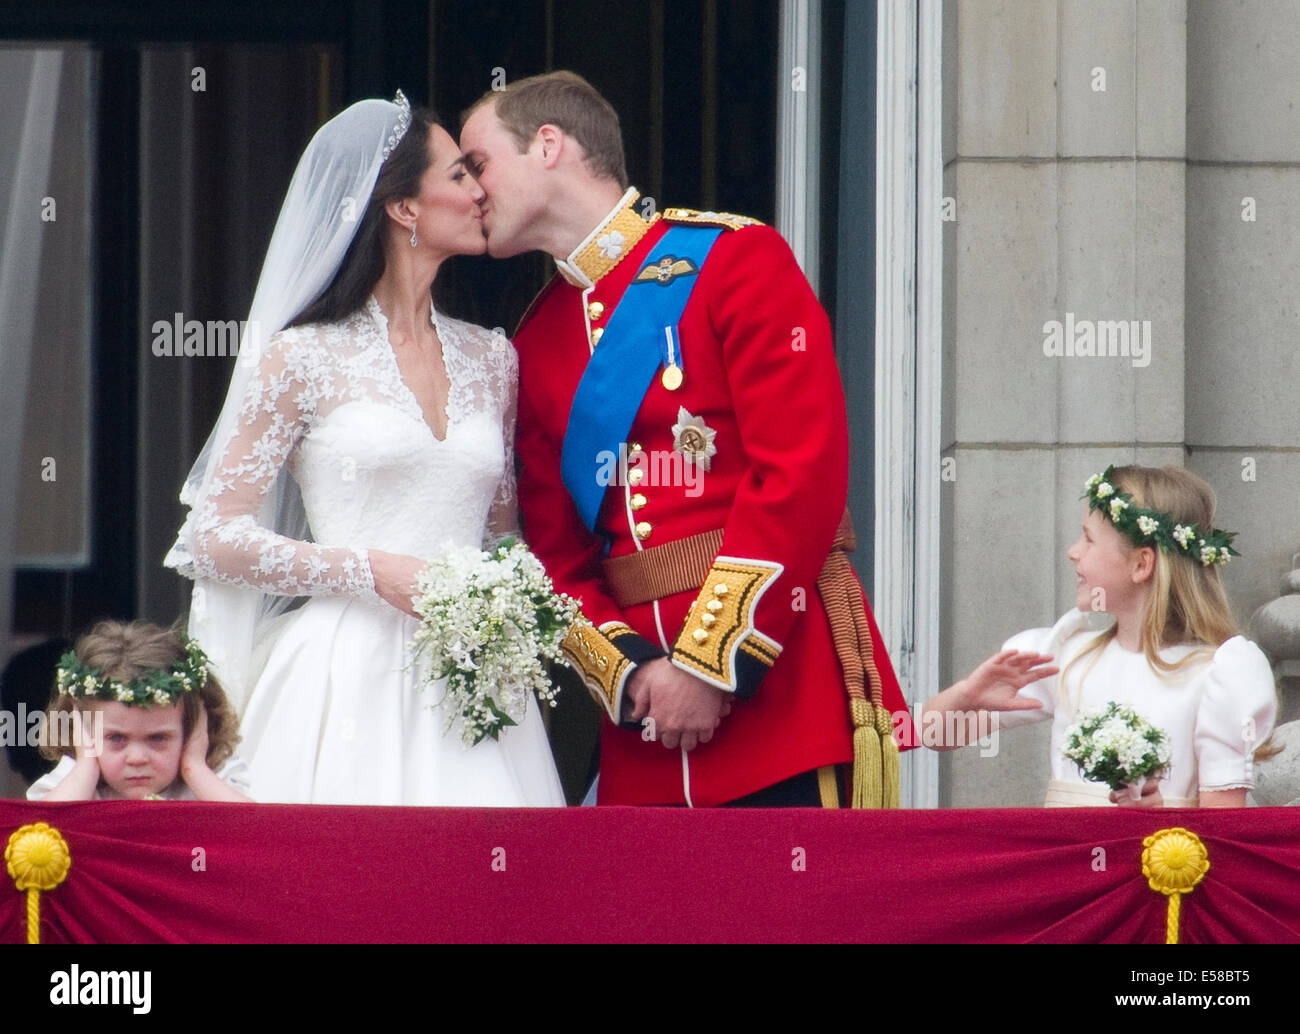 Royal Wedding Kiss.The Royal Wedding Kiss With Hrh Kate Duchess Of Cambridge